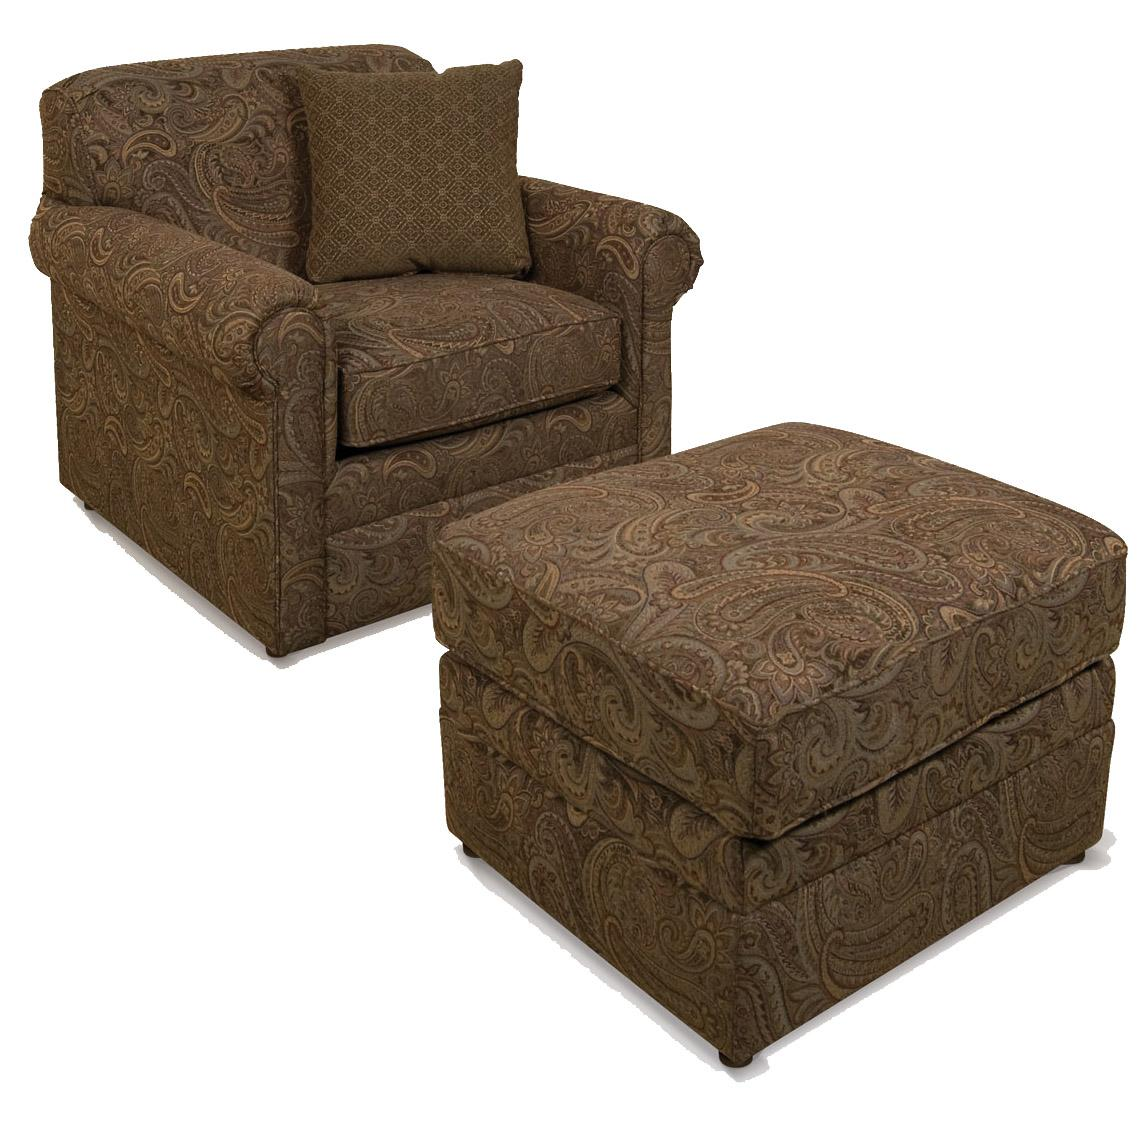 Savona Chair and Ottoman Combo by England at SuperStore